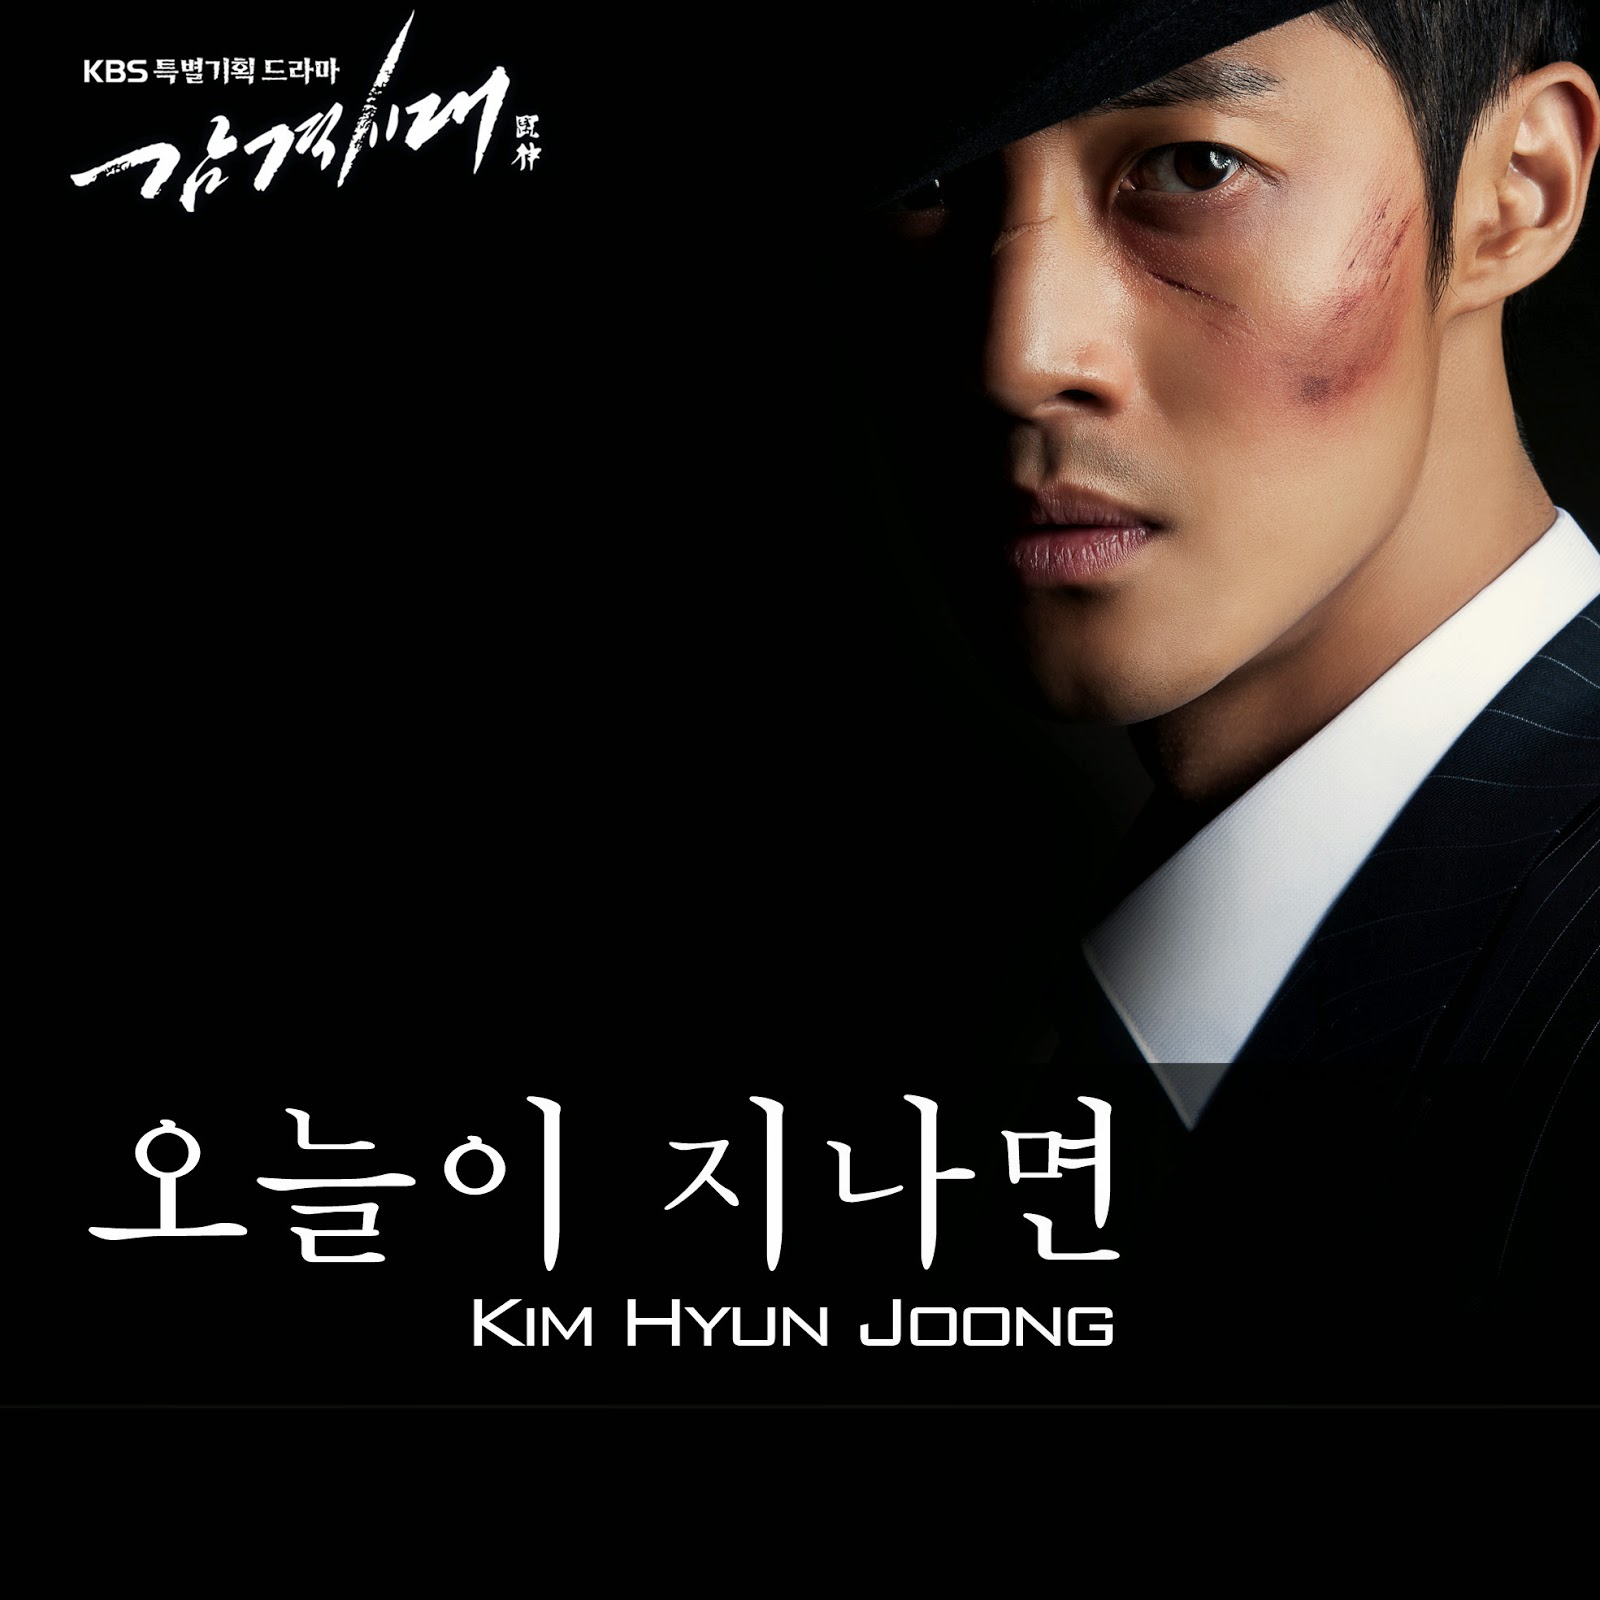 [Lyrics] Kim Hyun Joong - When Today Passes [Inspiring Generation OST]